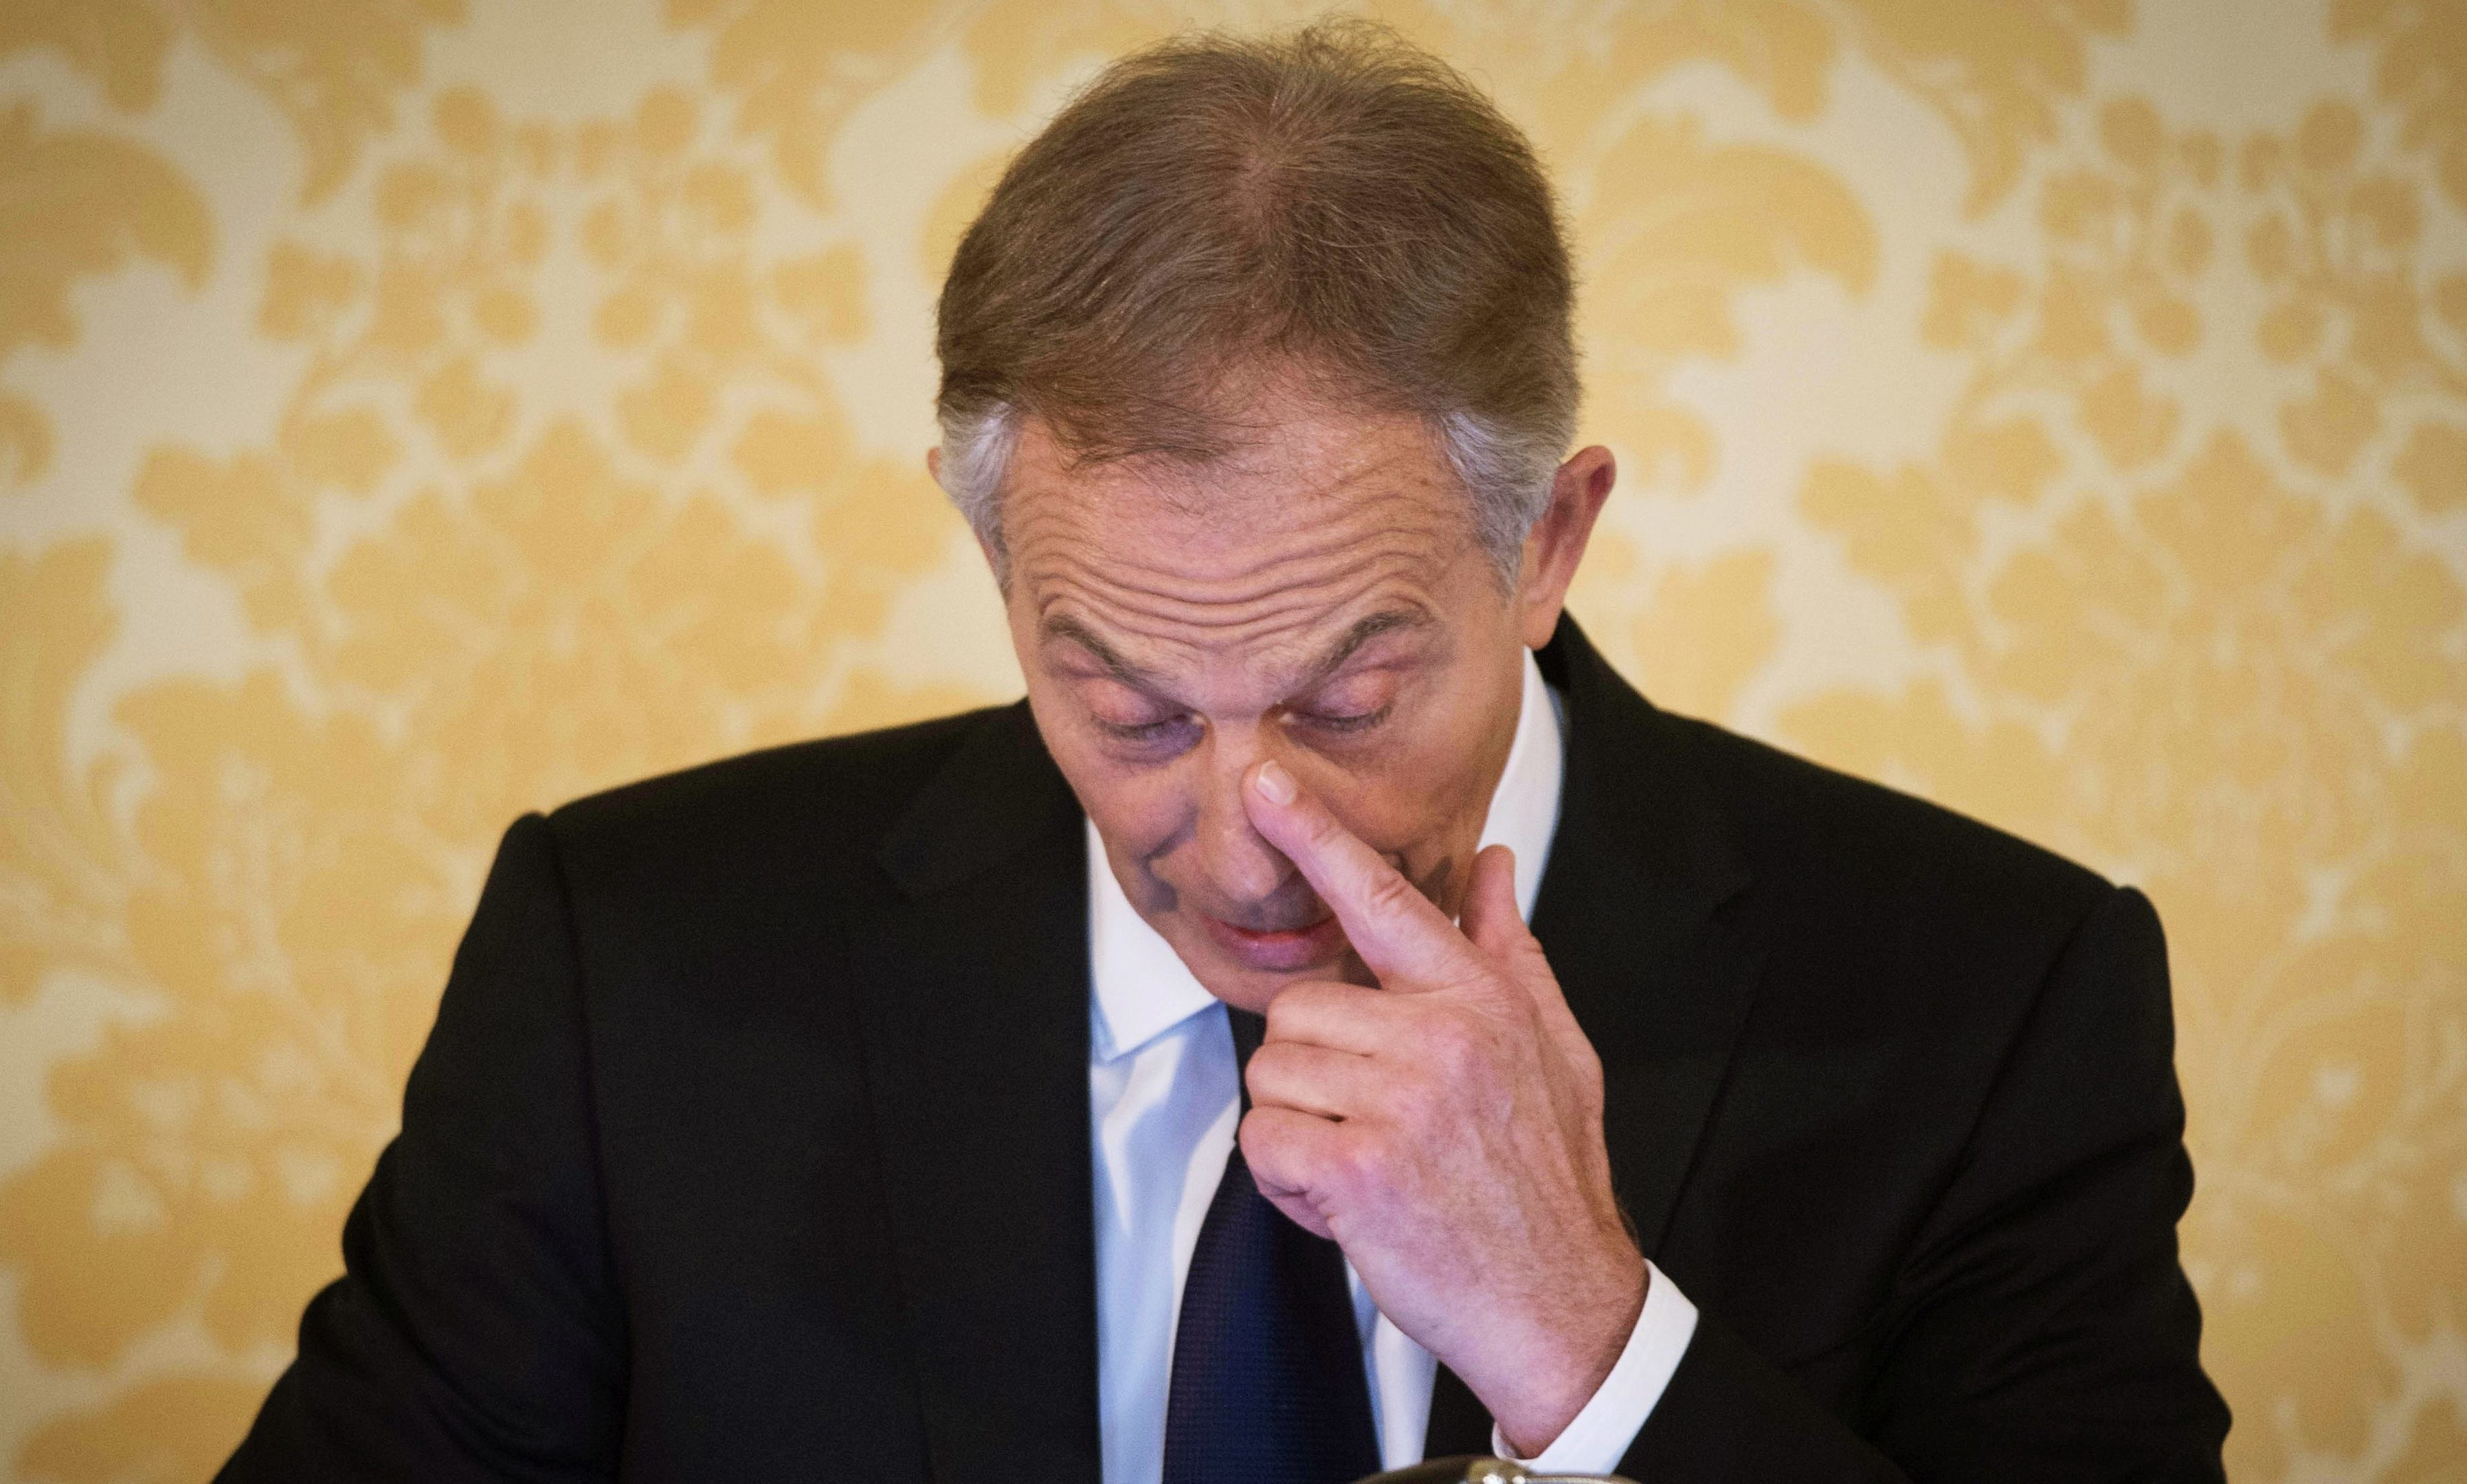 Tony Blair gives his response to the Chilcot Report.